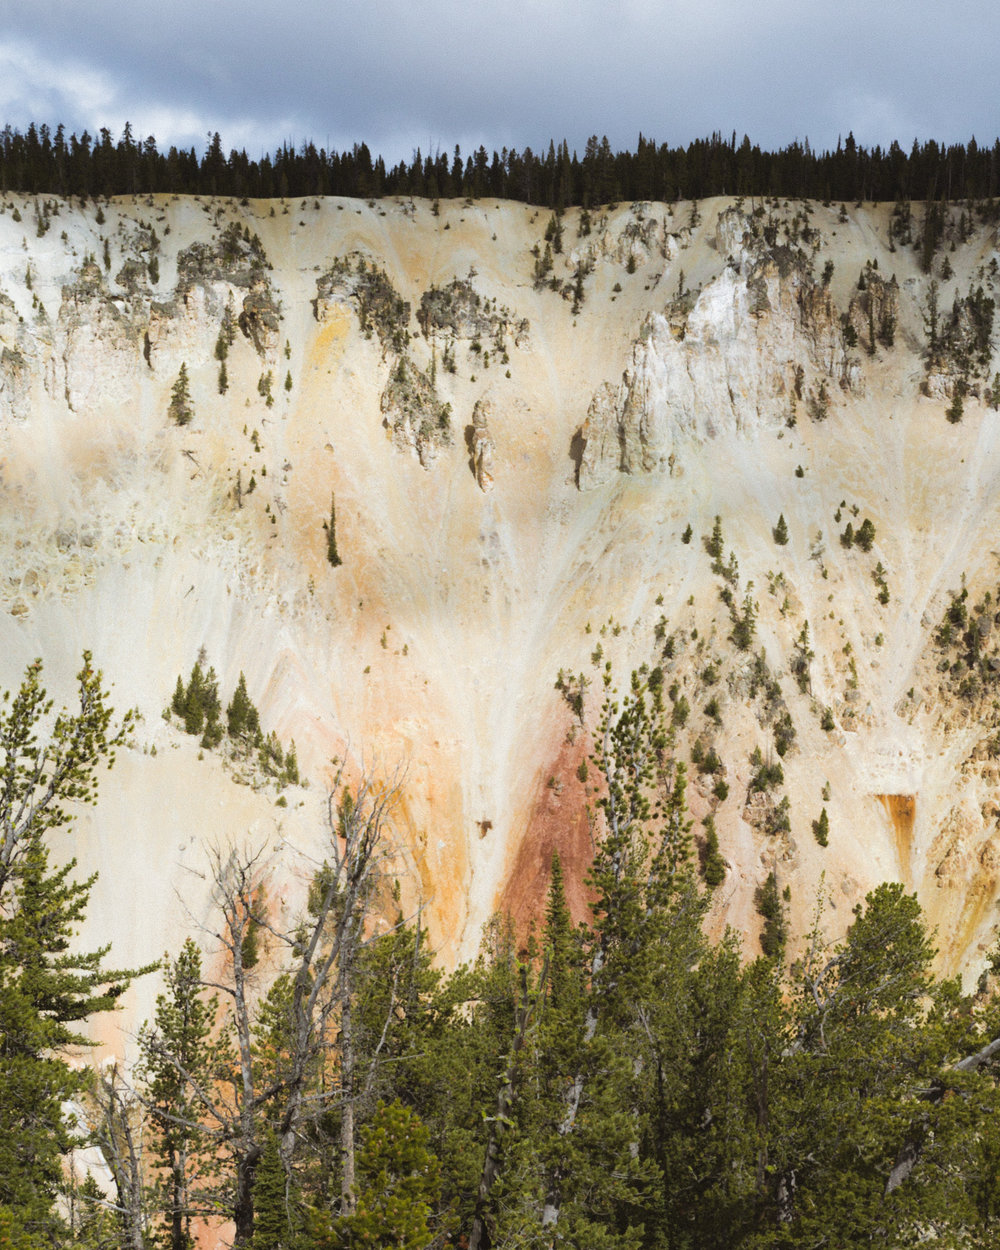 ROADTRIP_YELLOWSTONE_OCTOBER2018 (1 of 1)-9.jpg